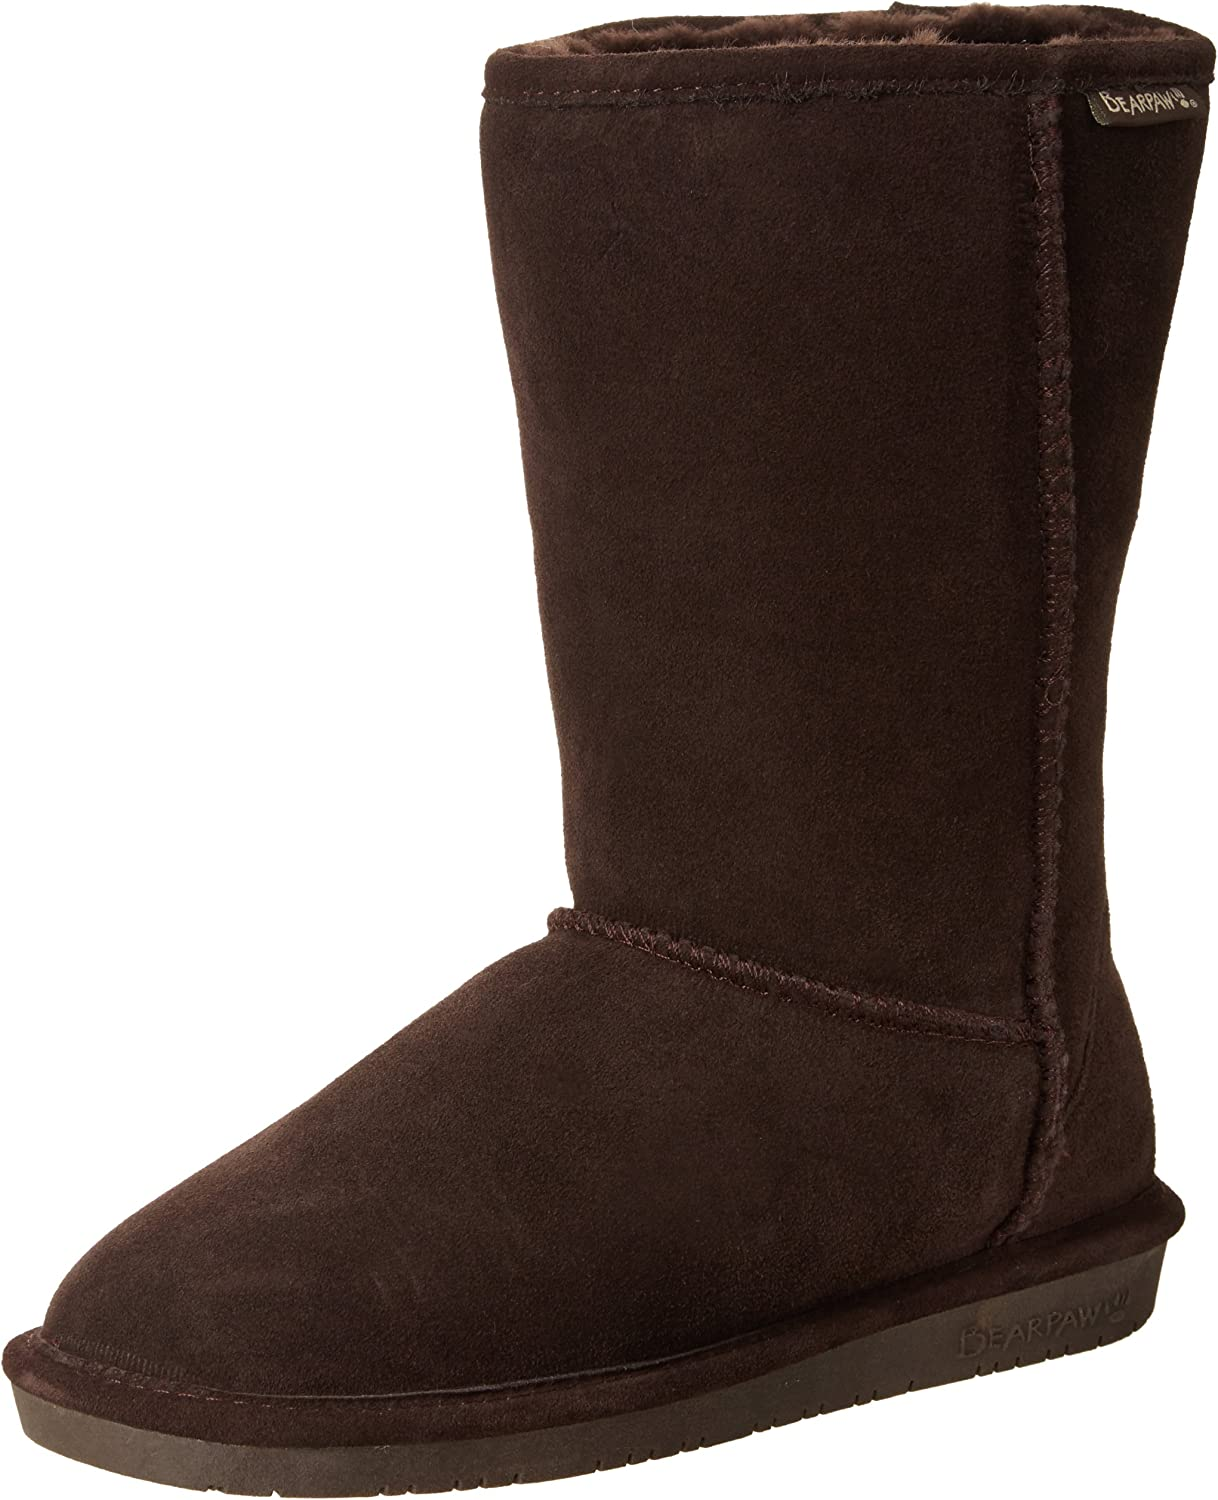 Bearpaw Womens Emma Fashion Boot